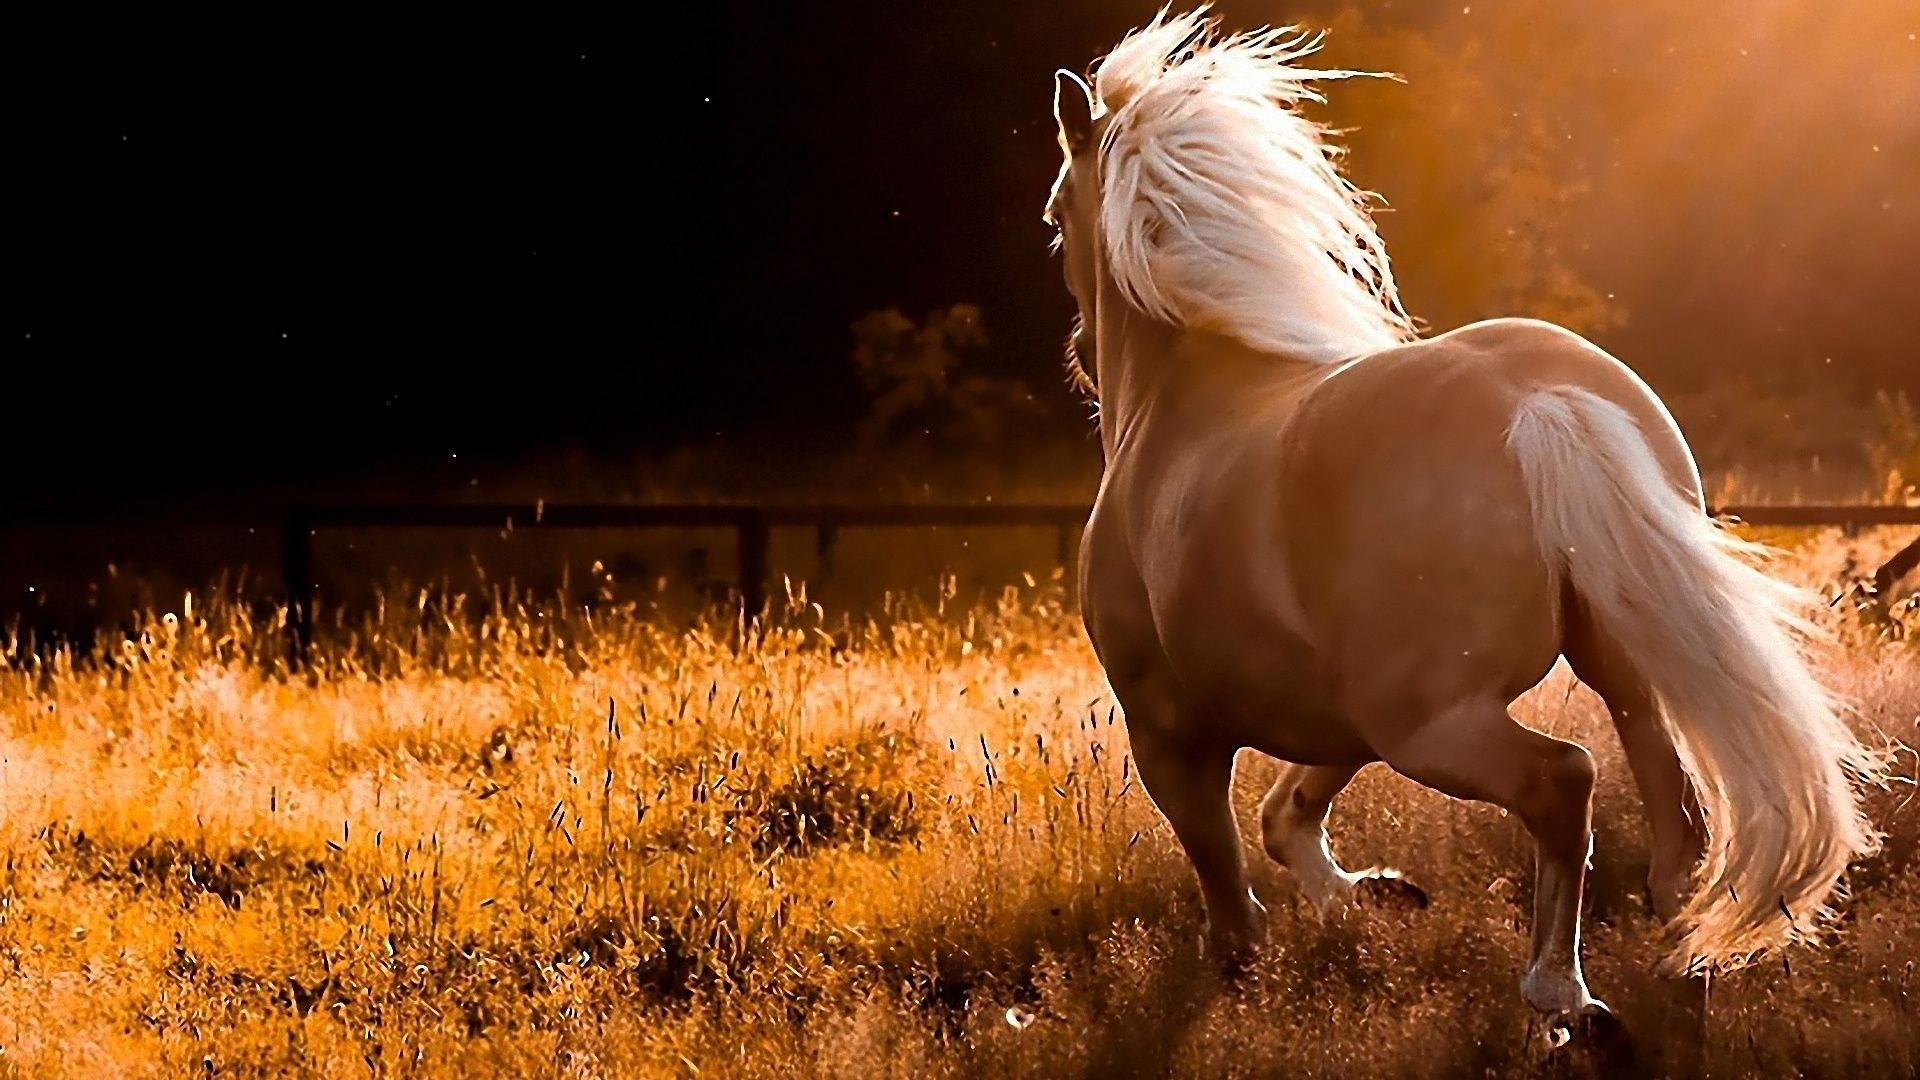 free horse wallpapers for computer - wallpaper cave | images